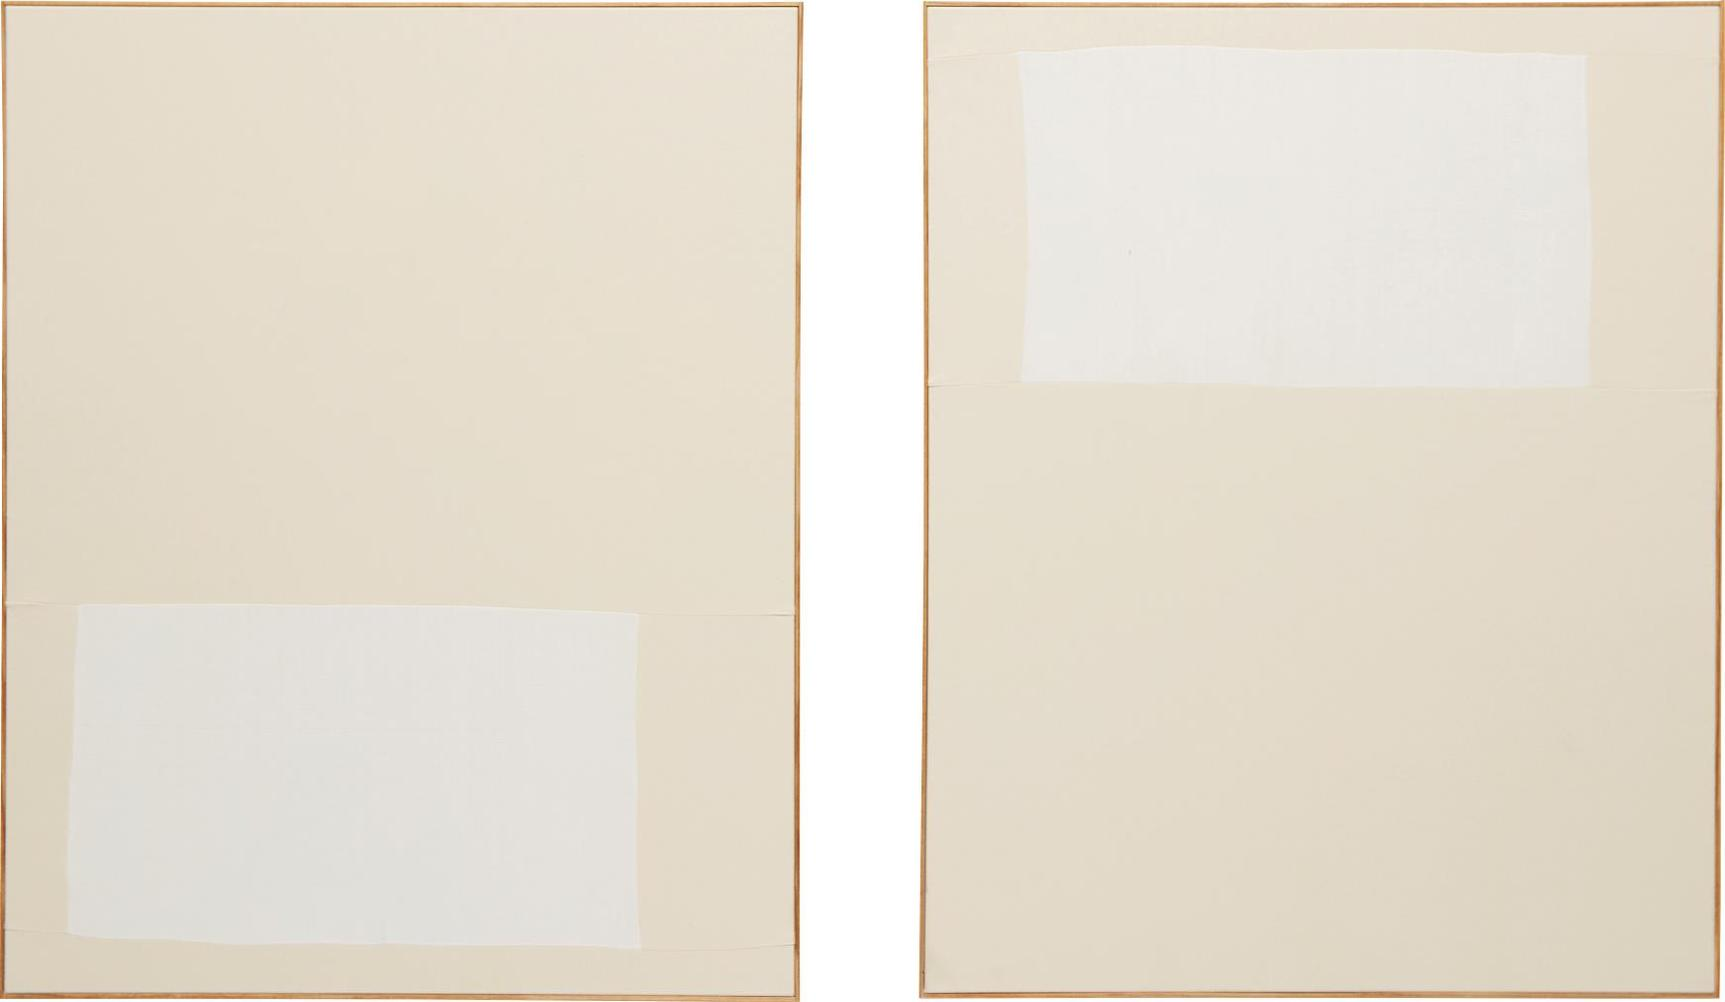 Ethan Cook-Two Works: (i) Untitled; (ii) Untitled-2013